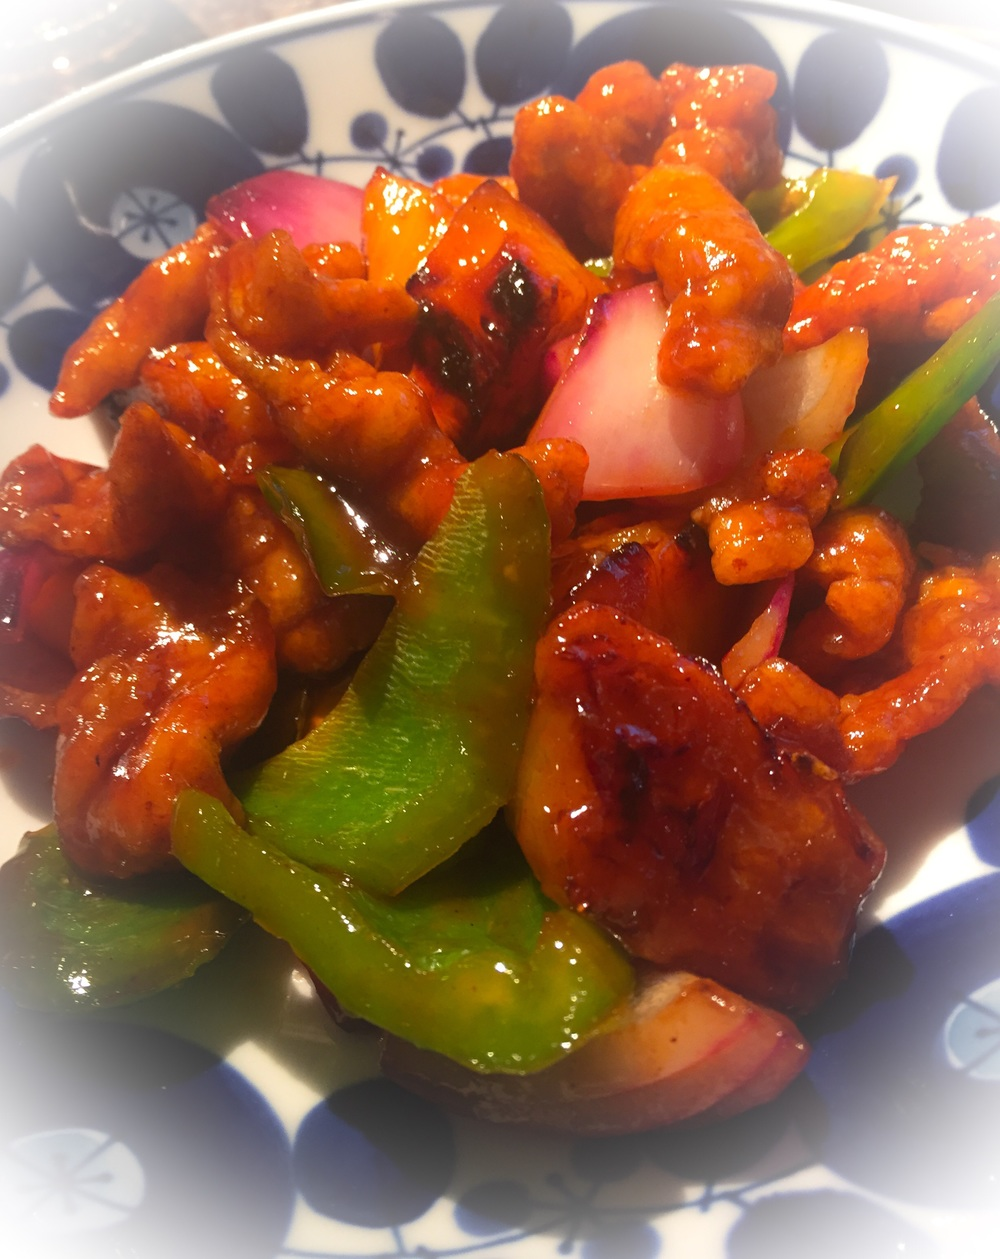 Sweet and Sour Pork (£9.00)